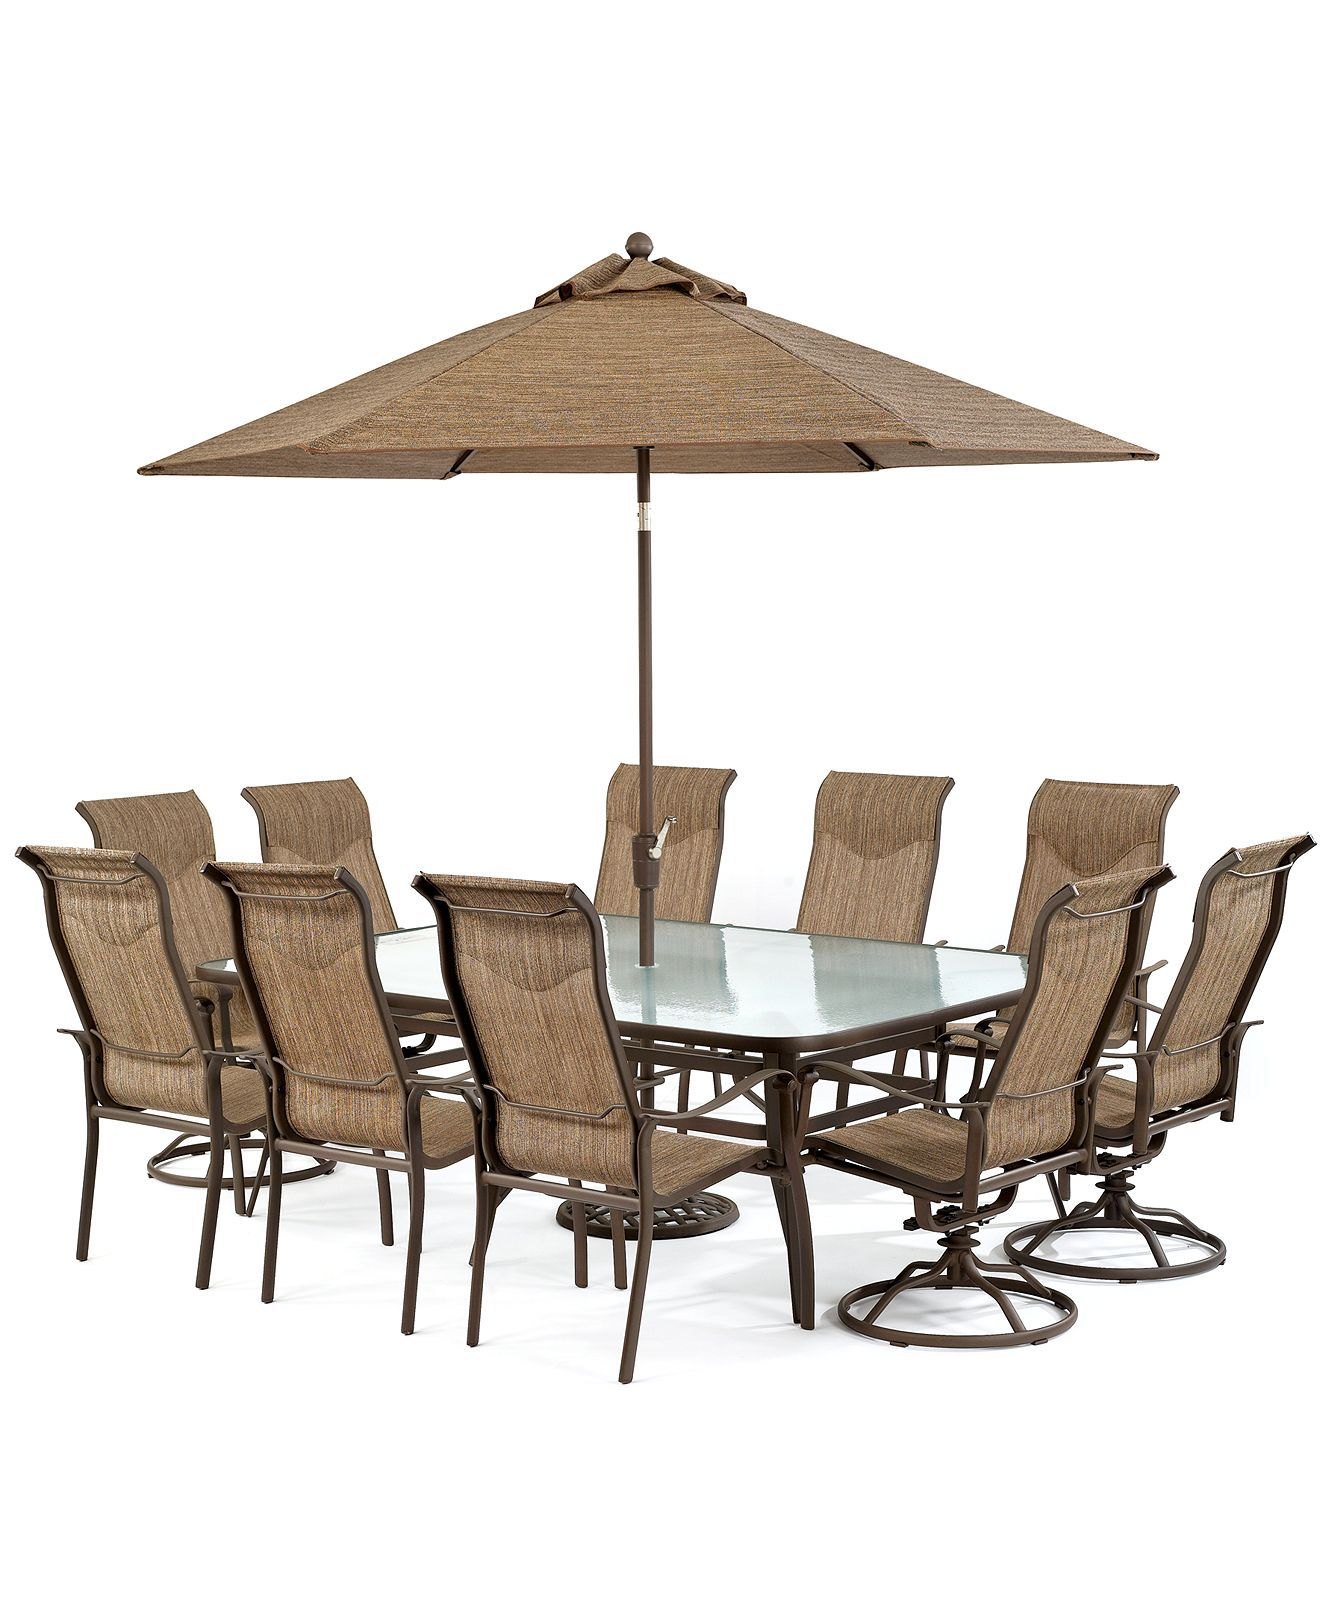 Exclusive Oasis Outdoor Aluminum 11 Pc Dining Set 84 X